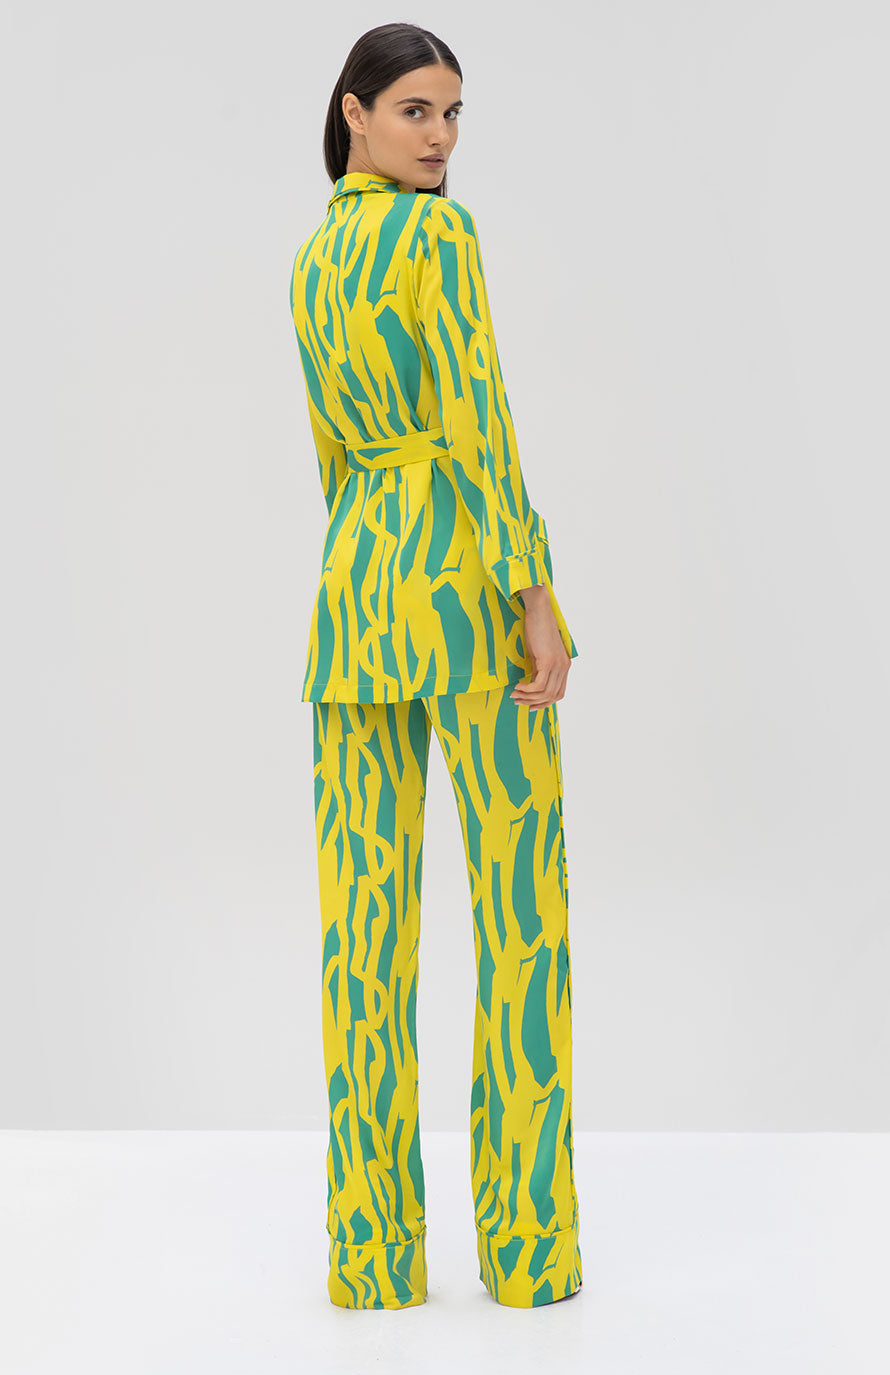 Alexis Eneko Robe and Kylian Pant Citrus Gehry - Rear View